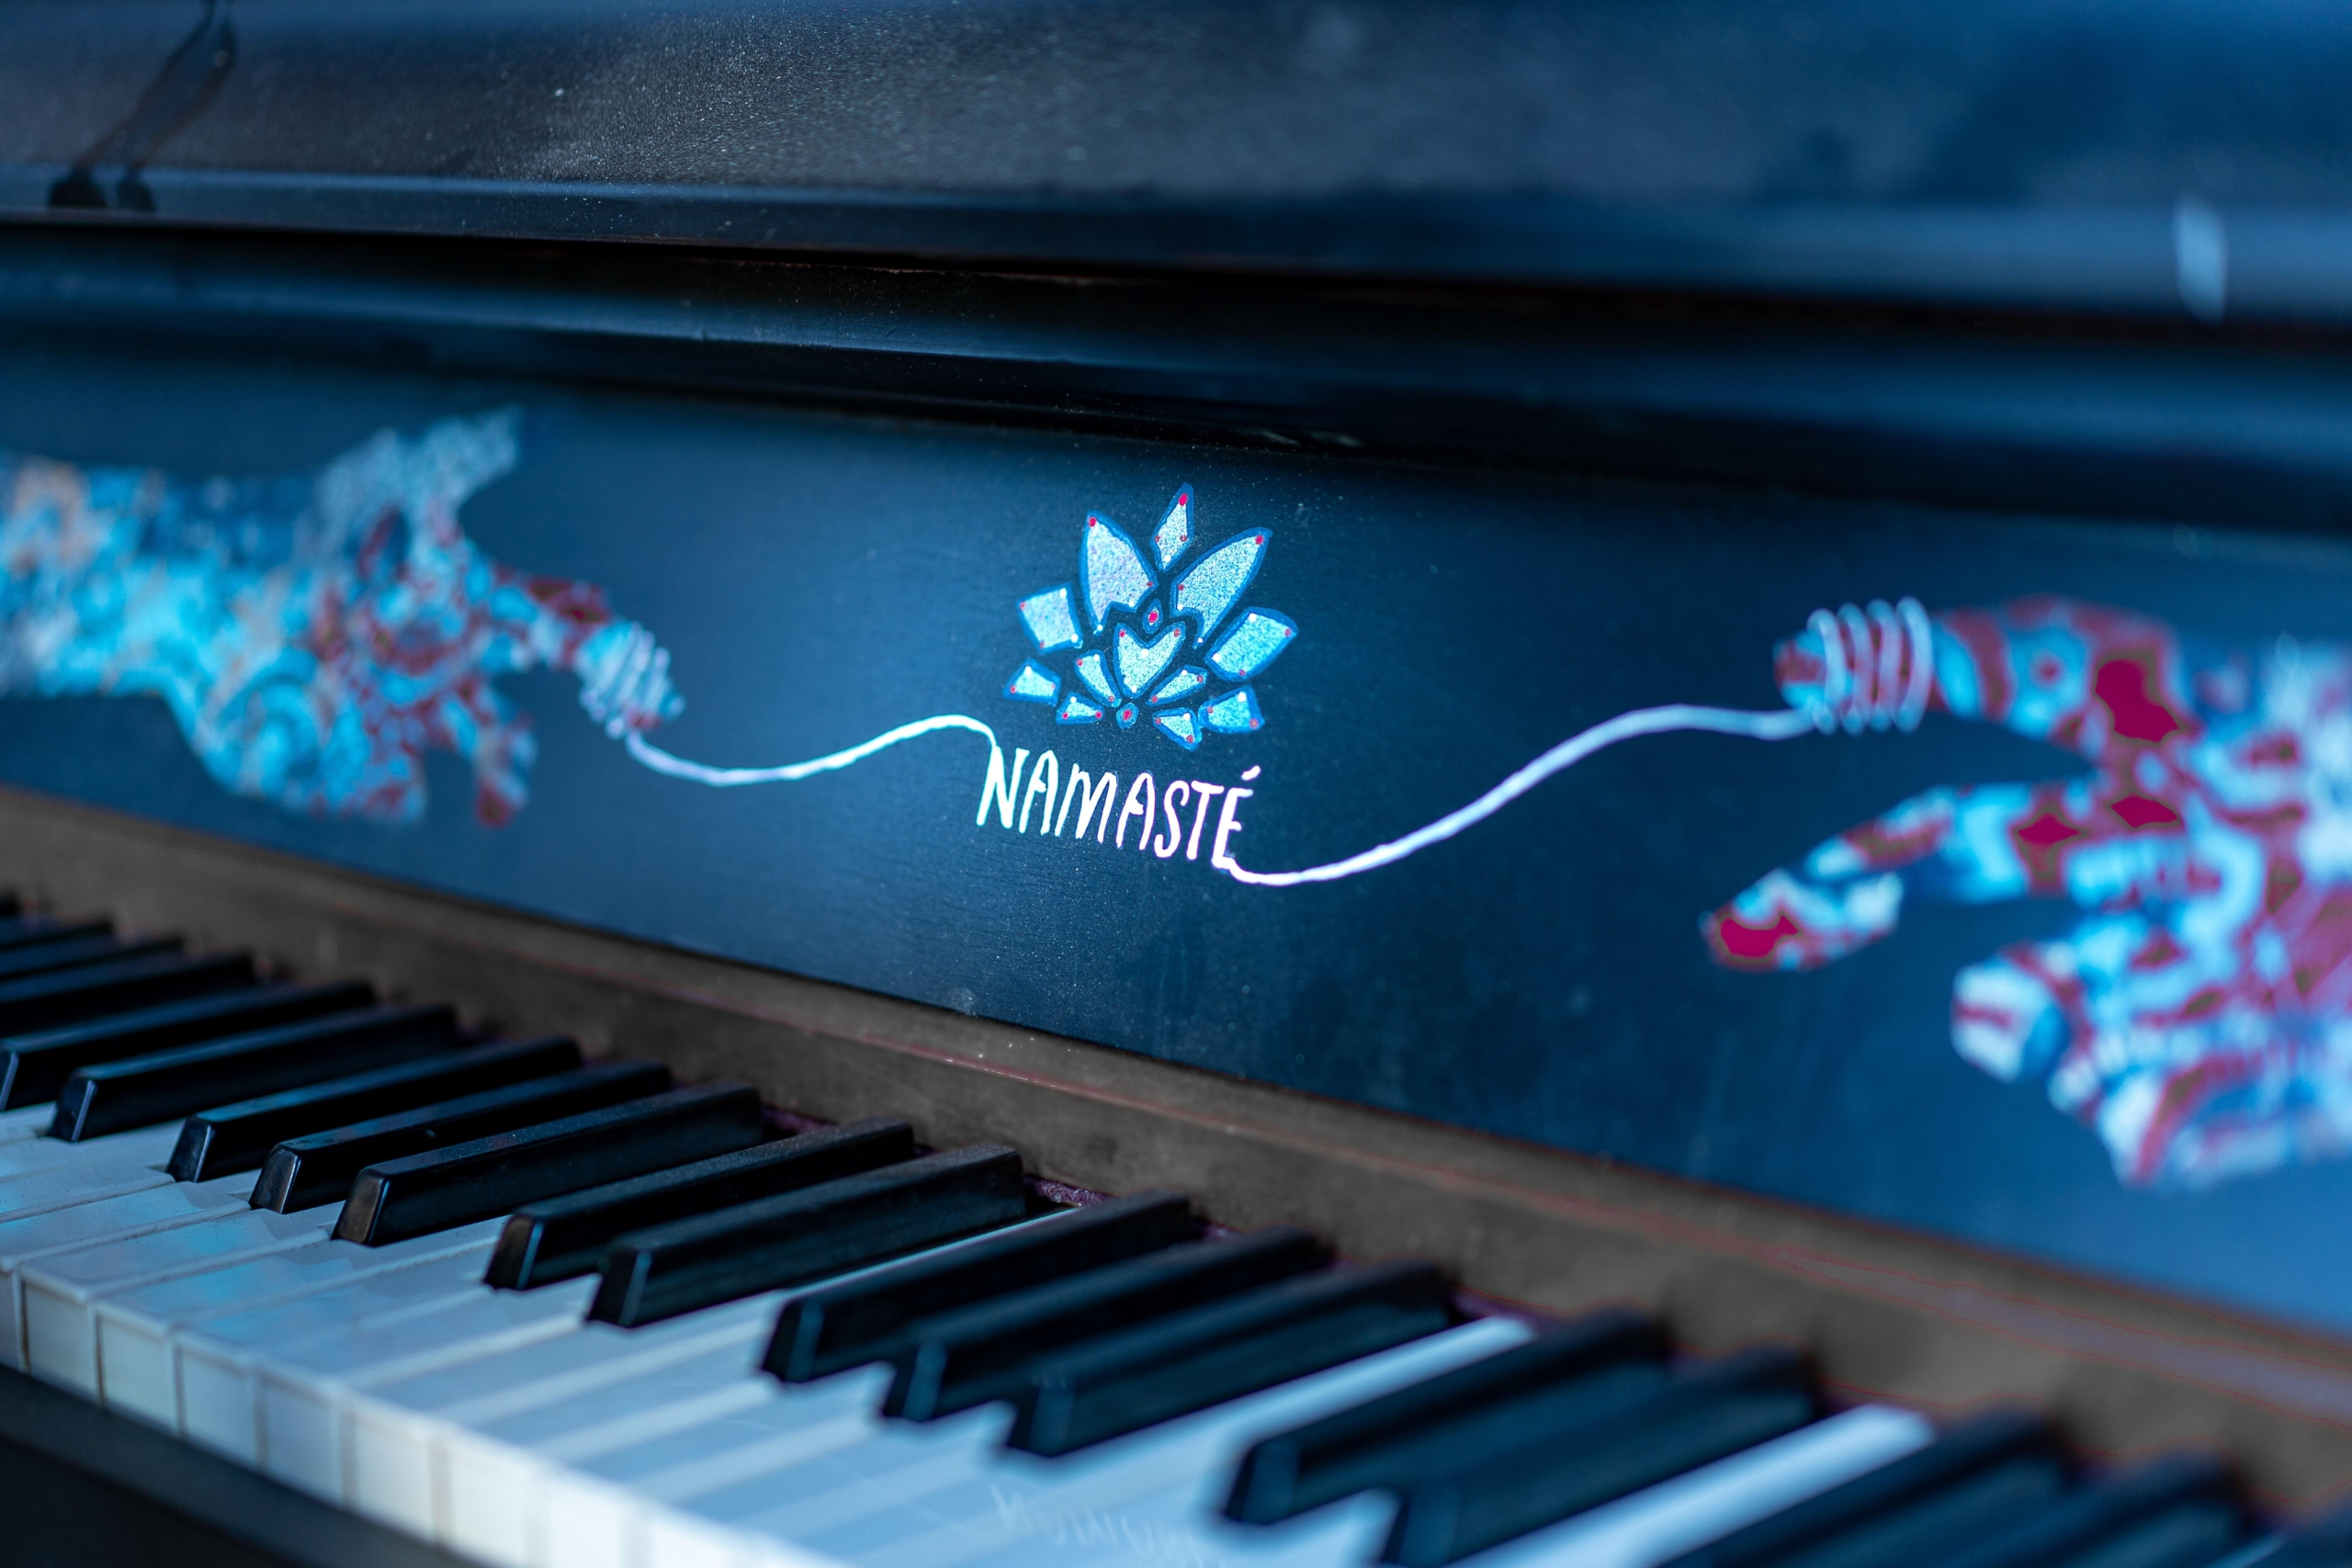 5 steps to begin your soulful piano playing journey